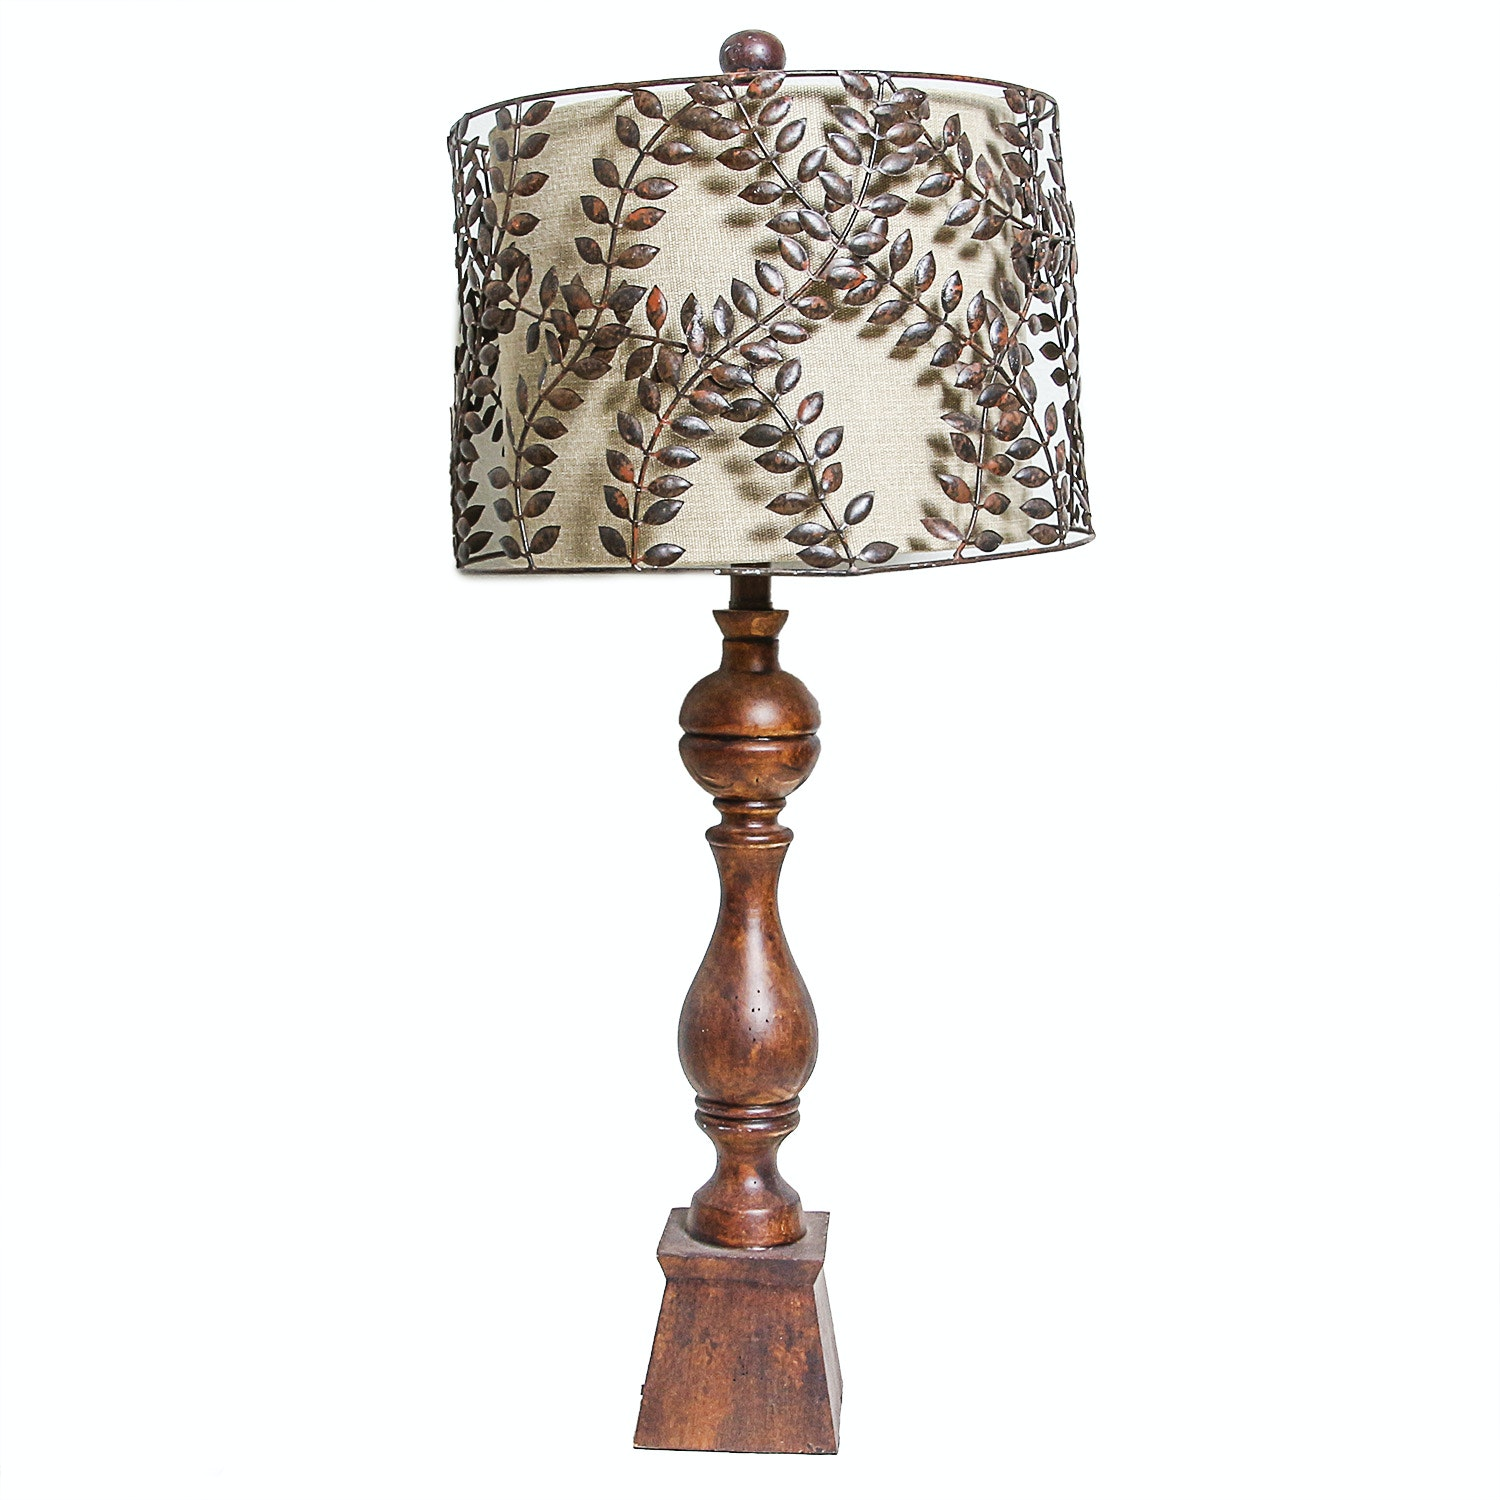 Guild Masters Lamp with Metal Leaf Shade